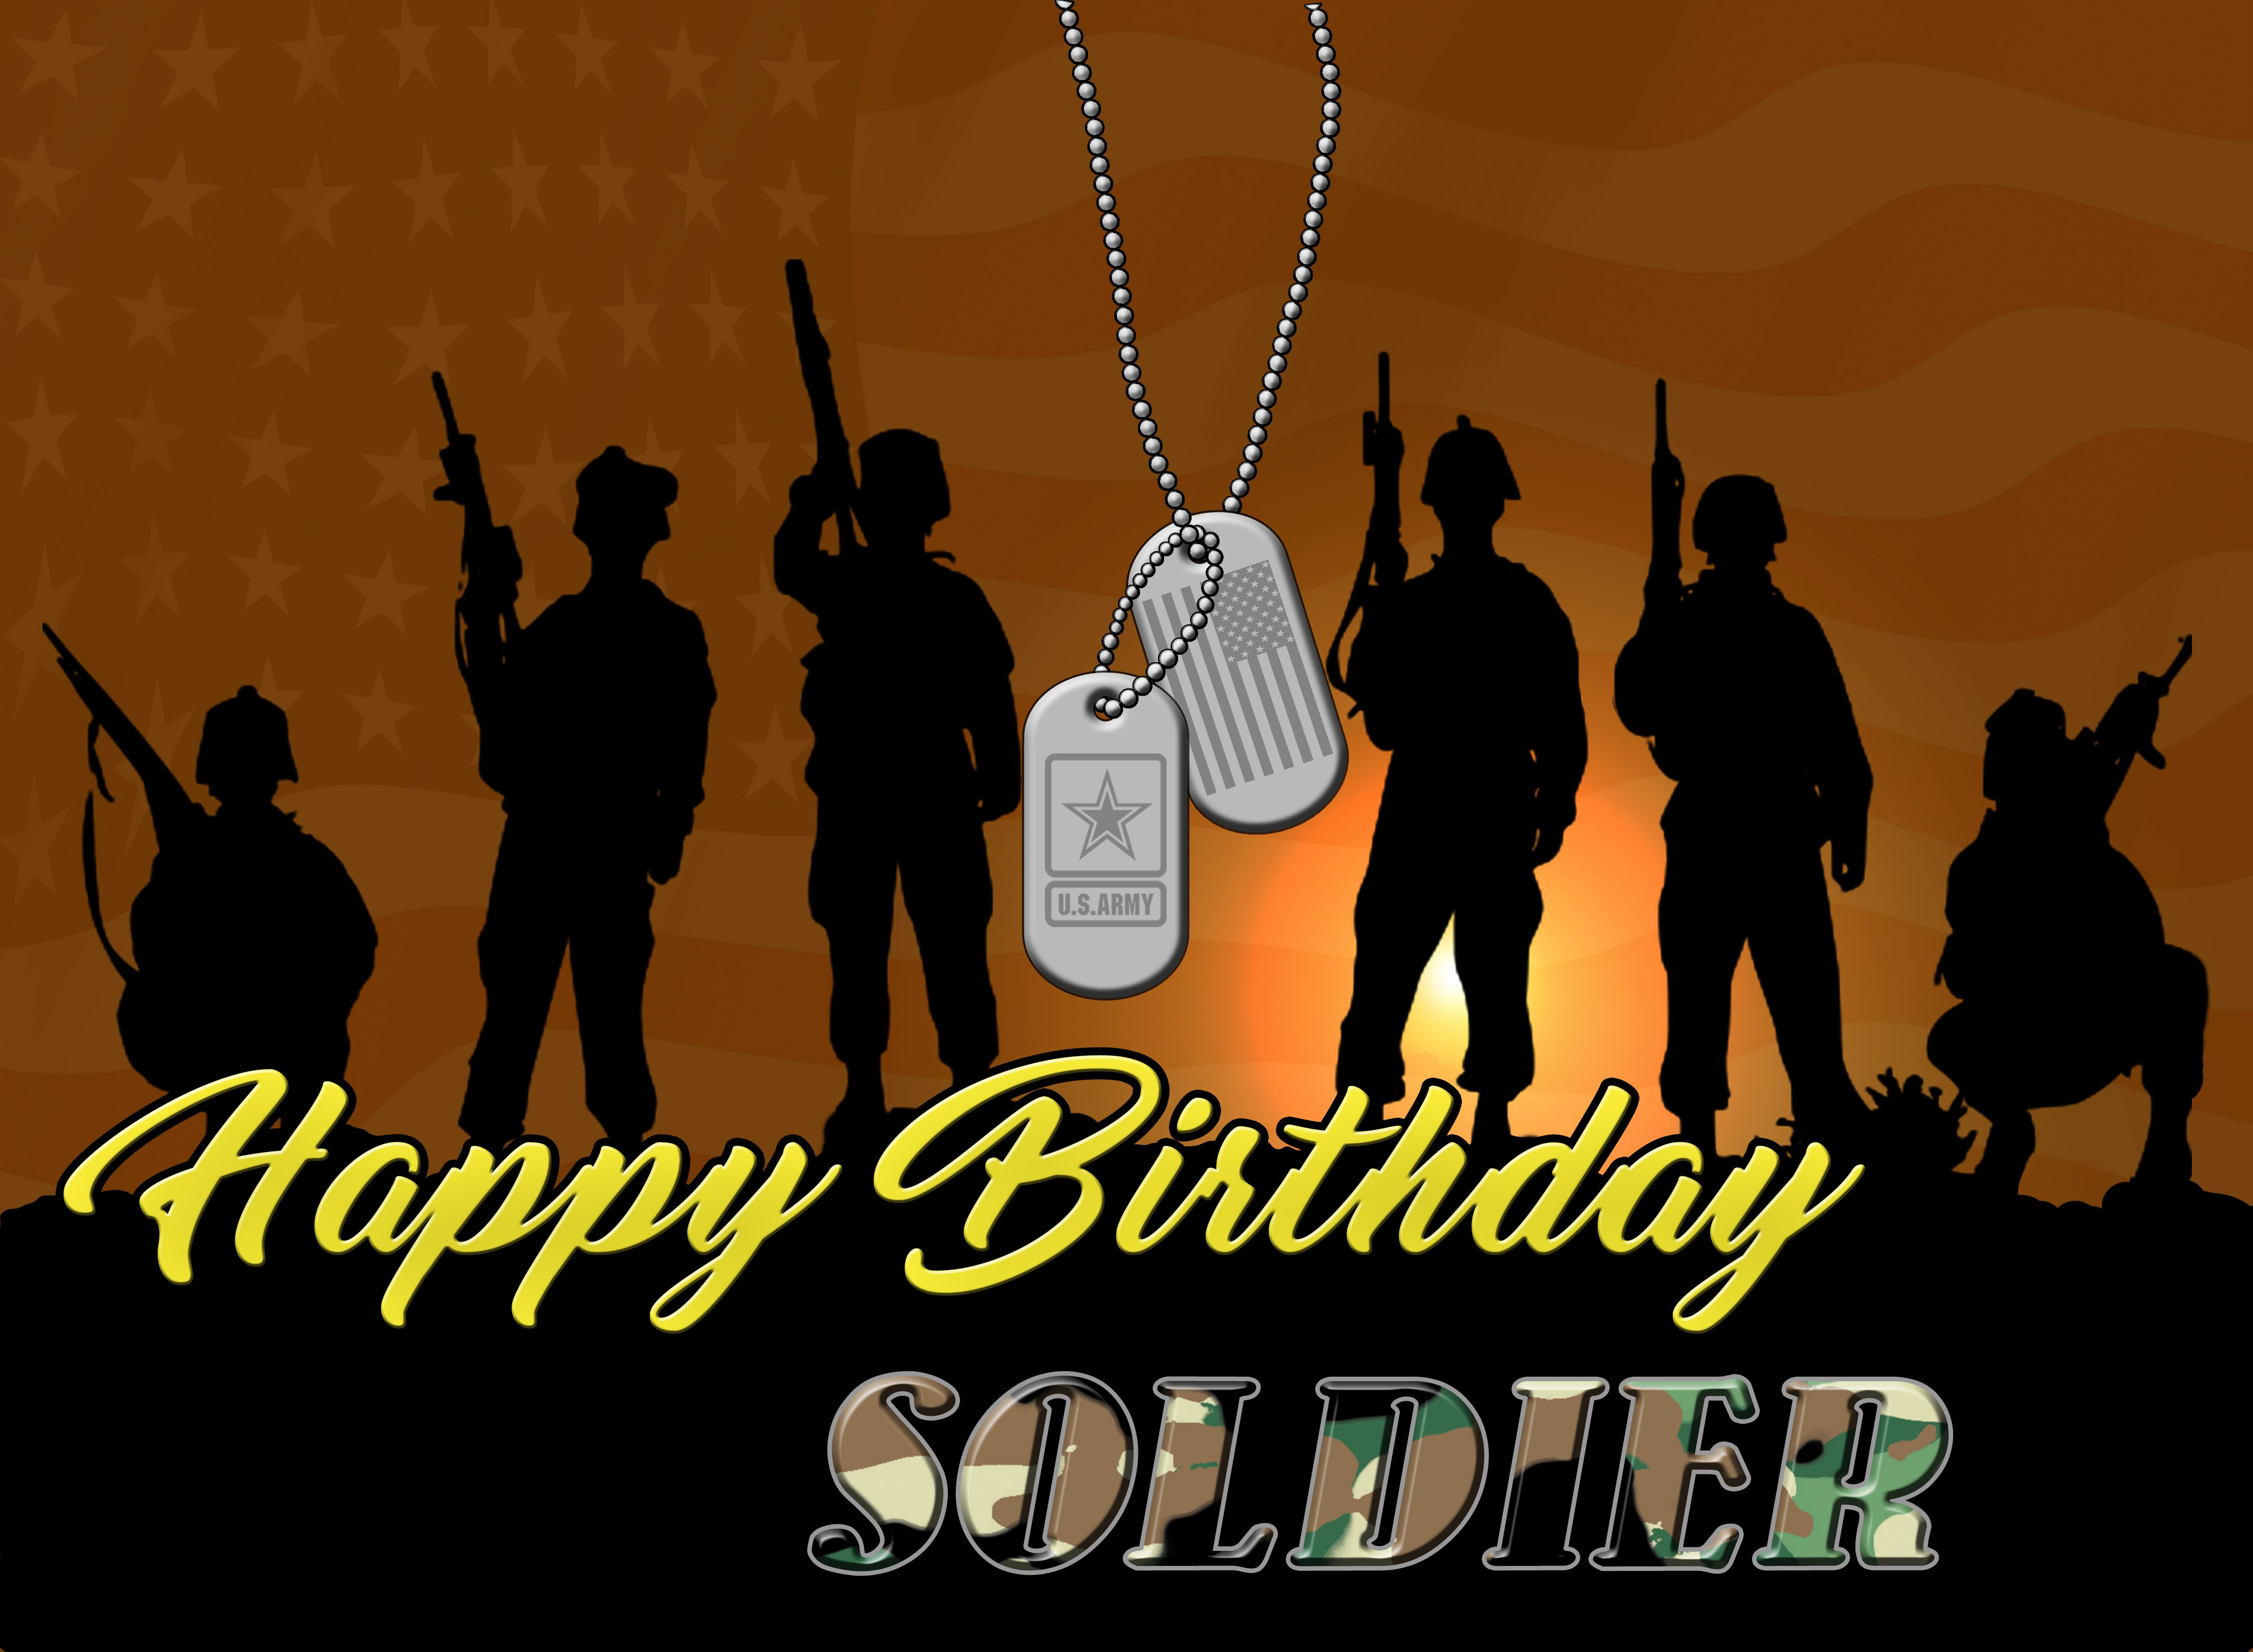 United States Army, US ARMY, Happy Birthday, Soldier, Post